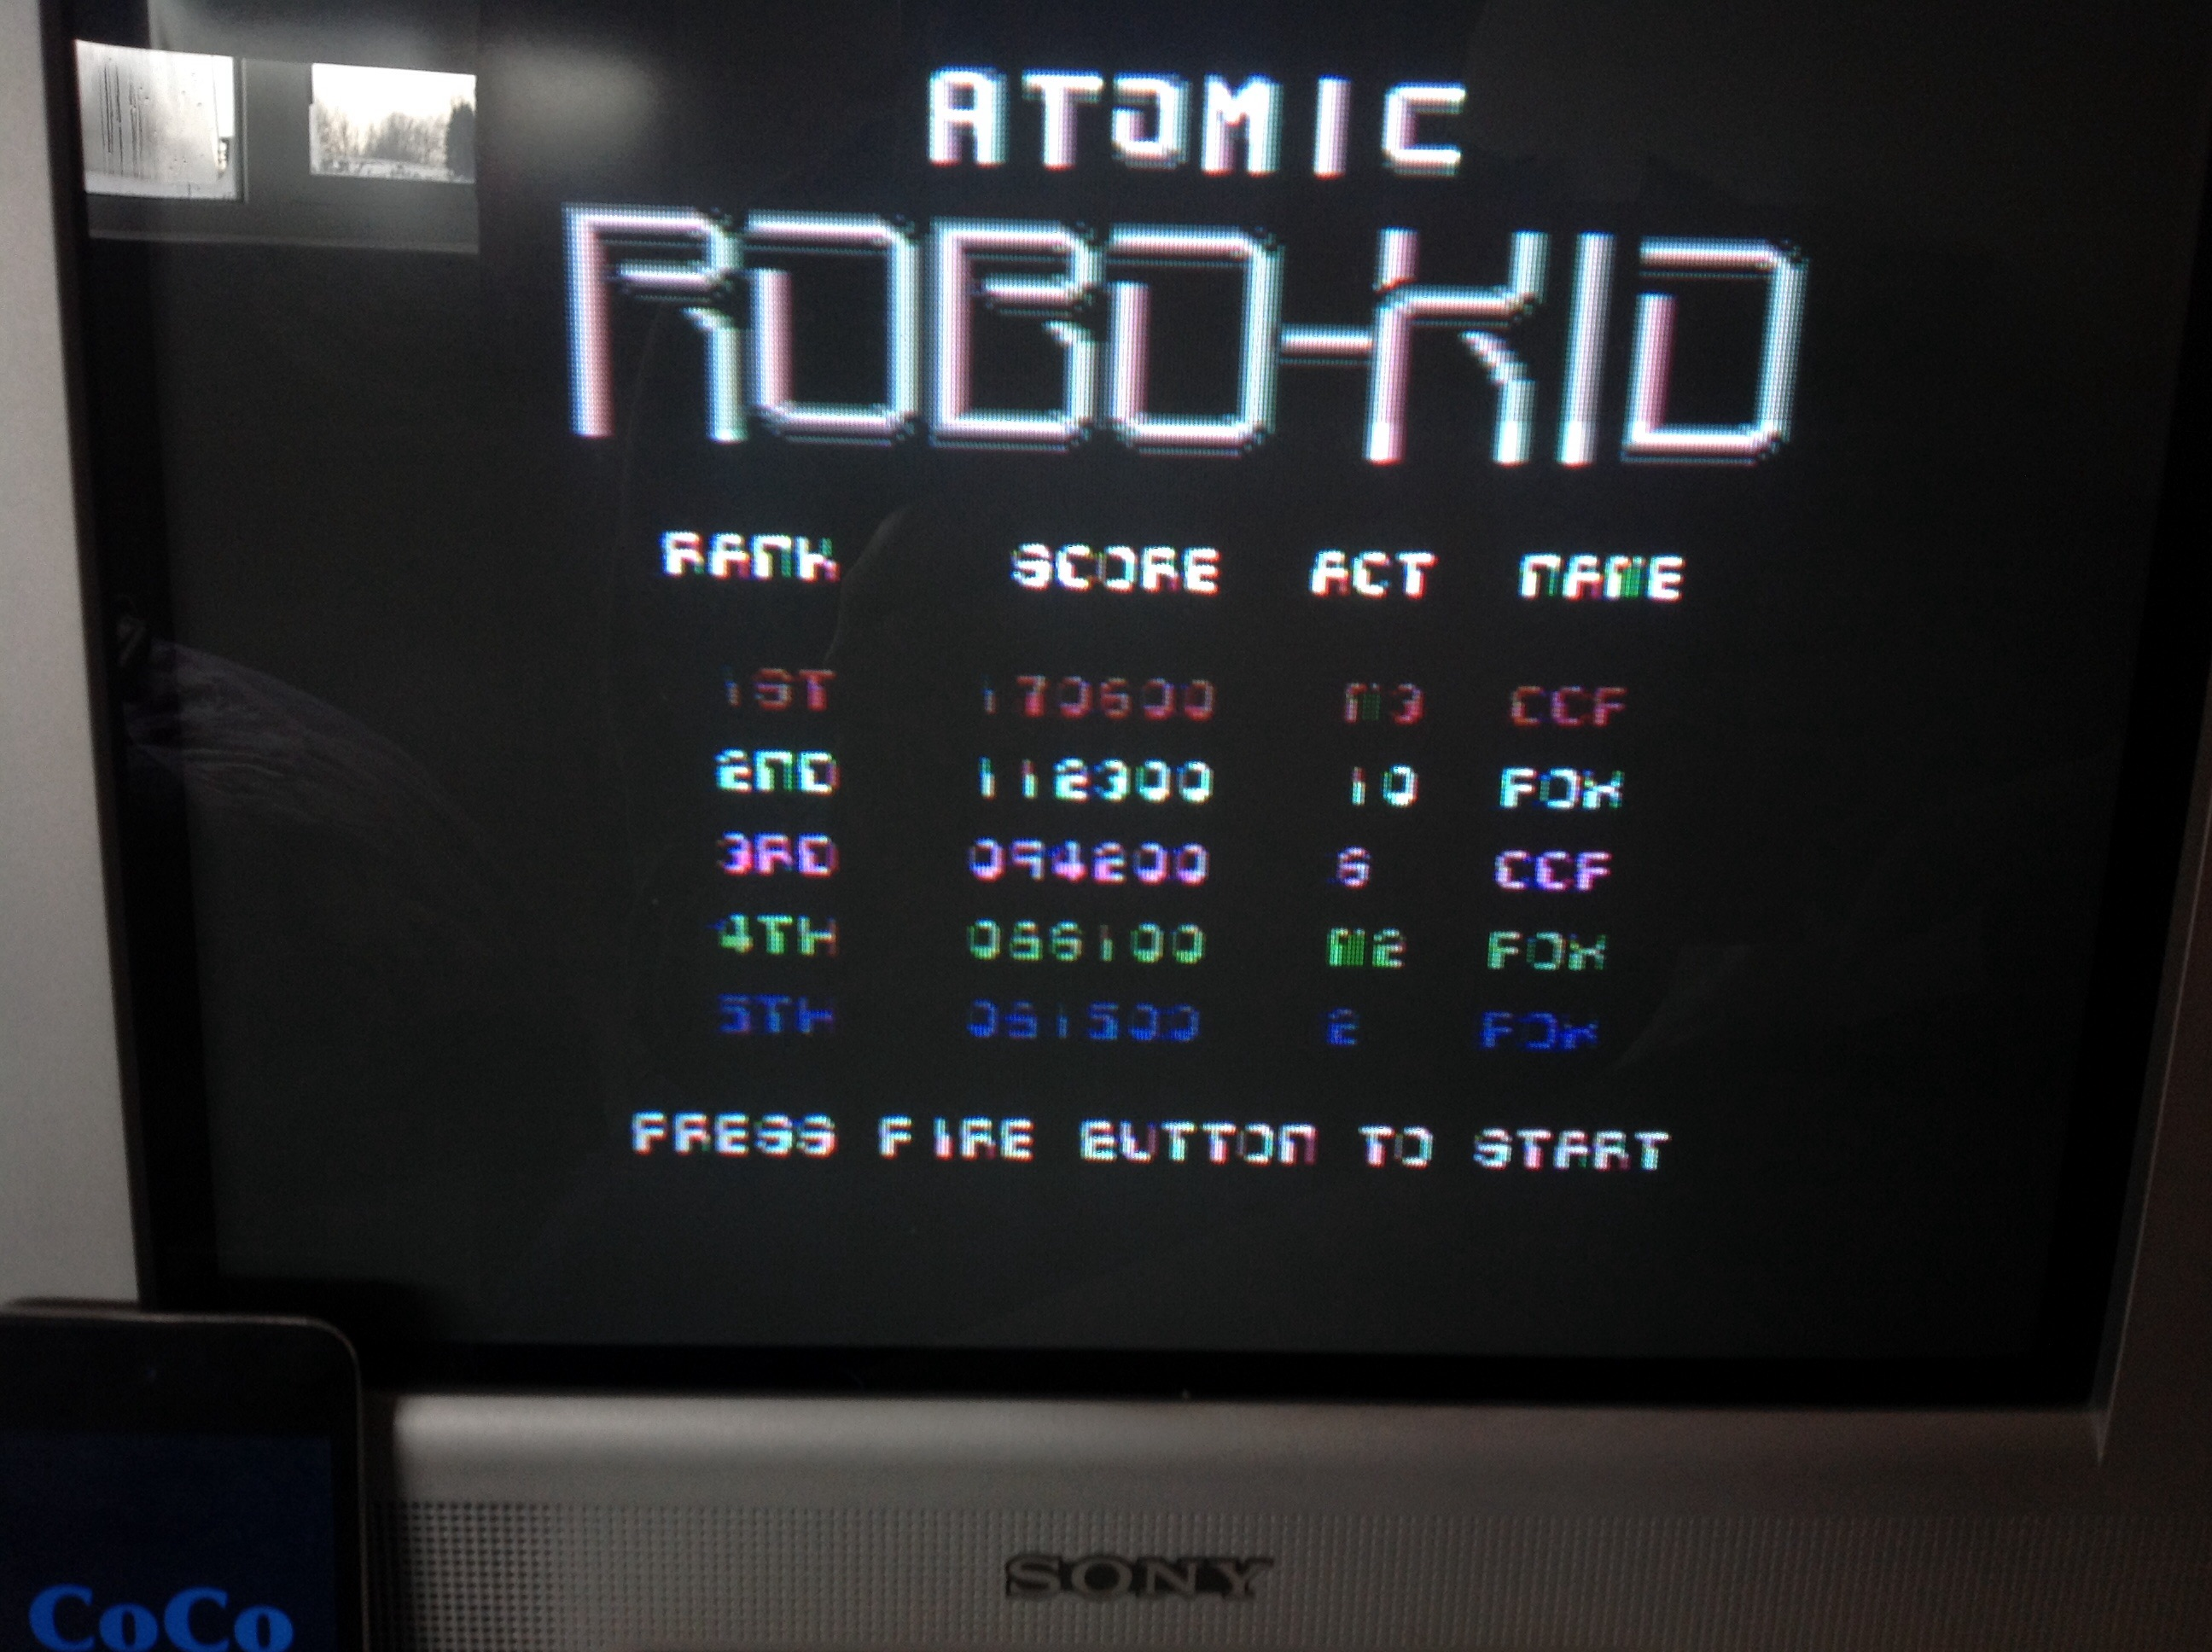 CoCoForest: Atomic Robo Kid (Commodore 64) 170,600 points on 2015-03-25 04:33:23